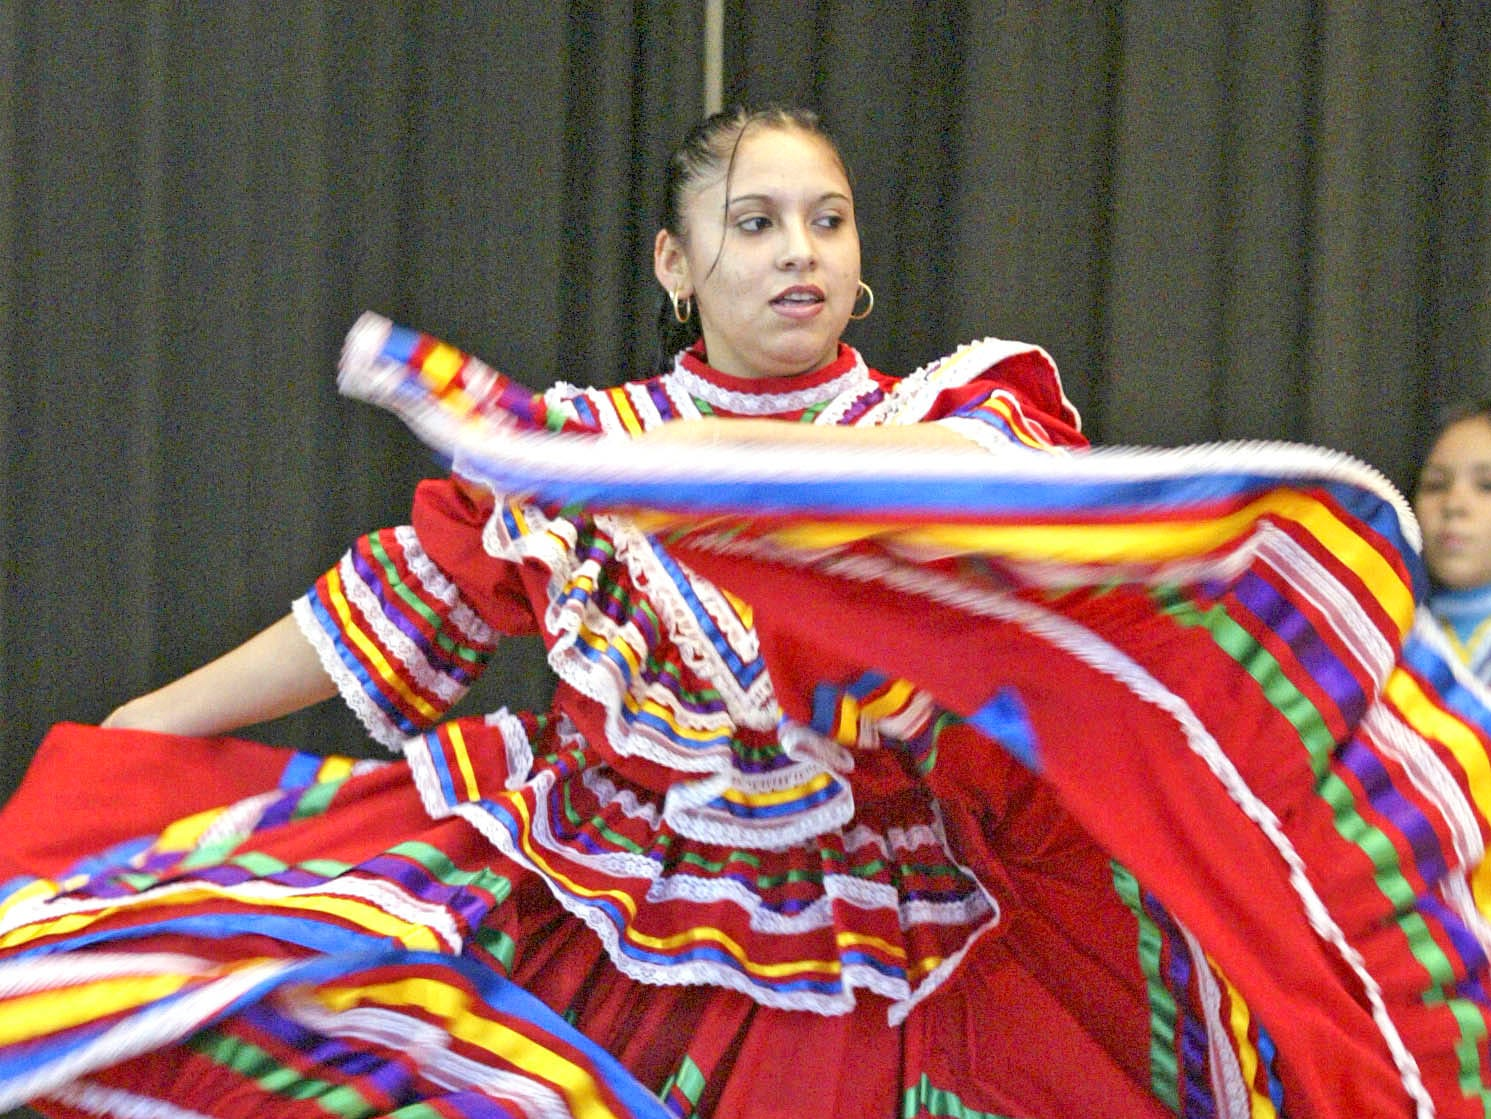 Sheboygan South's Brenda Zagal has her skirt in fluid motion as she dances to a traditional Mexican dance at the second annual Hispanic Information Fair held Sunday, November 5, 2006, at the Sheboygan Armory.  Zagal is a member of the South High School International Dancers troupe.  The event, sponsored by the Sheboygan mayor's office and Lakeshore Technical College, provided information to Hispanic individuals who might not be aware of local community agencies and programs.